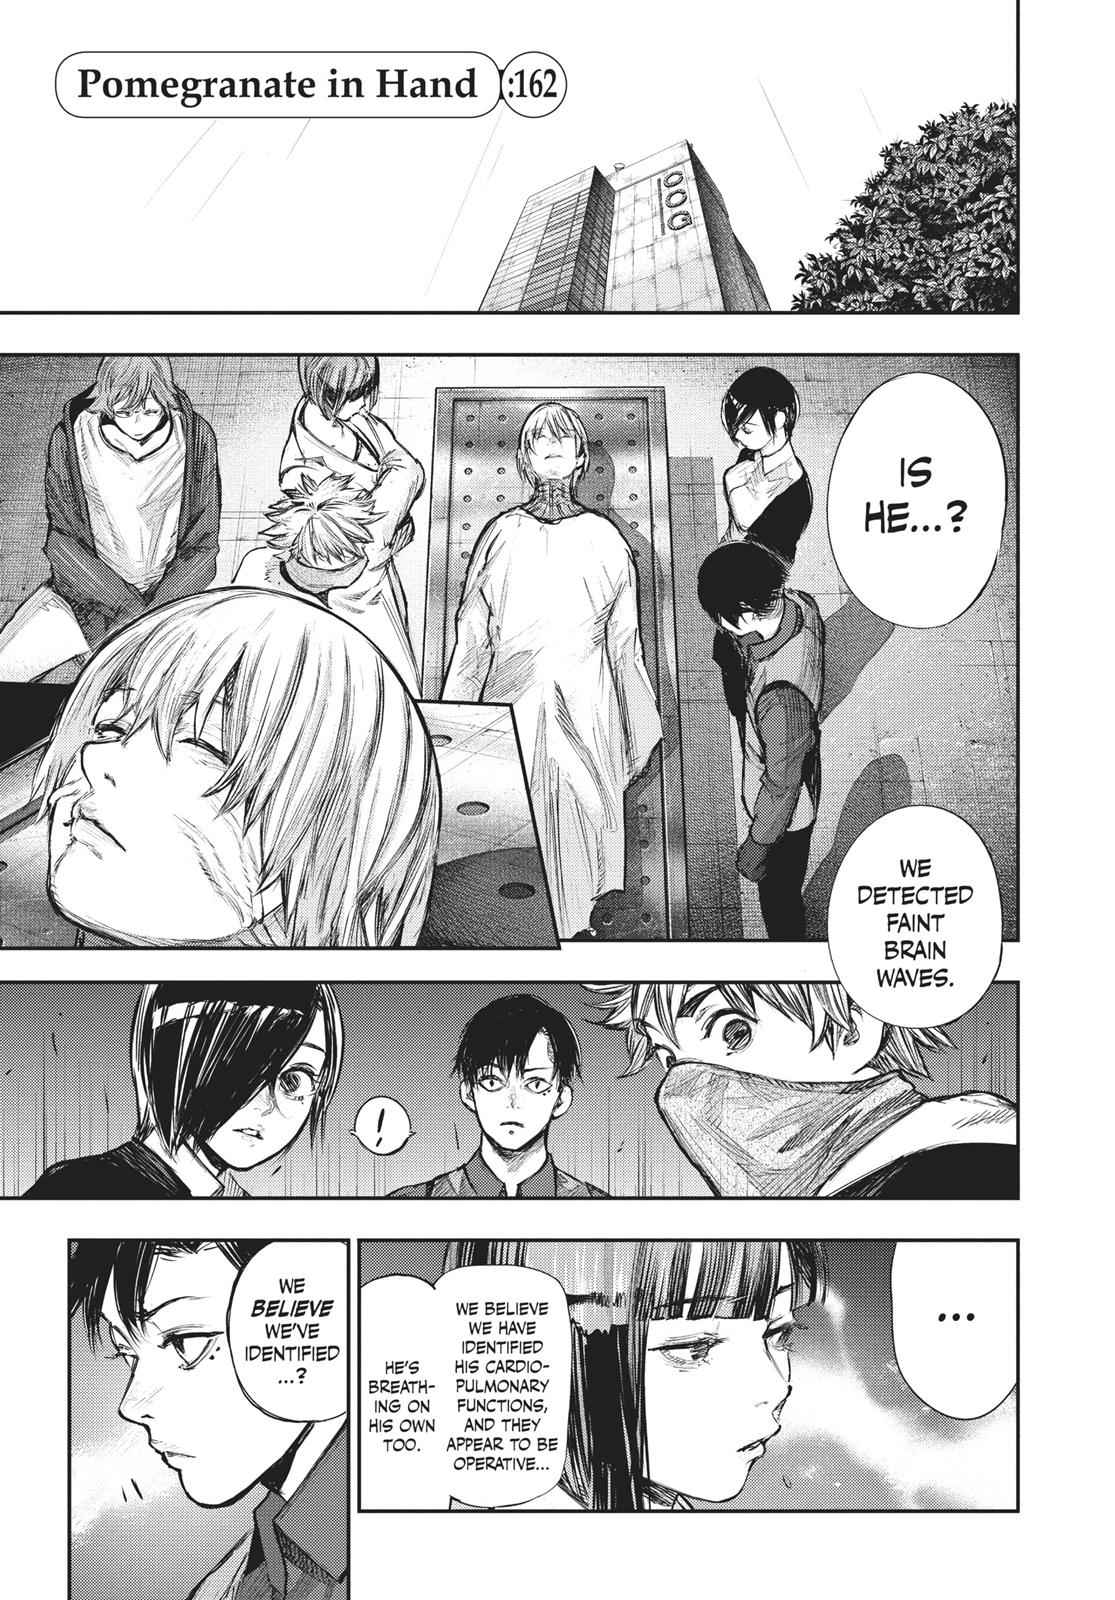 Tokyo Ghoul:re Chapter 162 Page 1